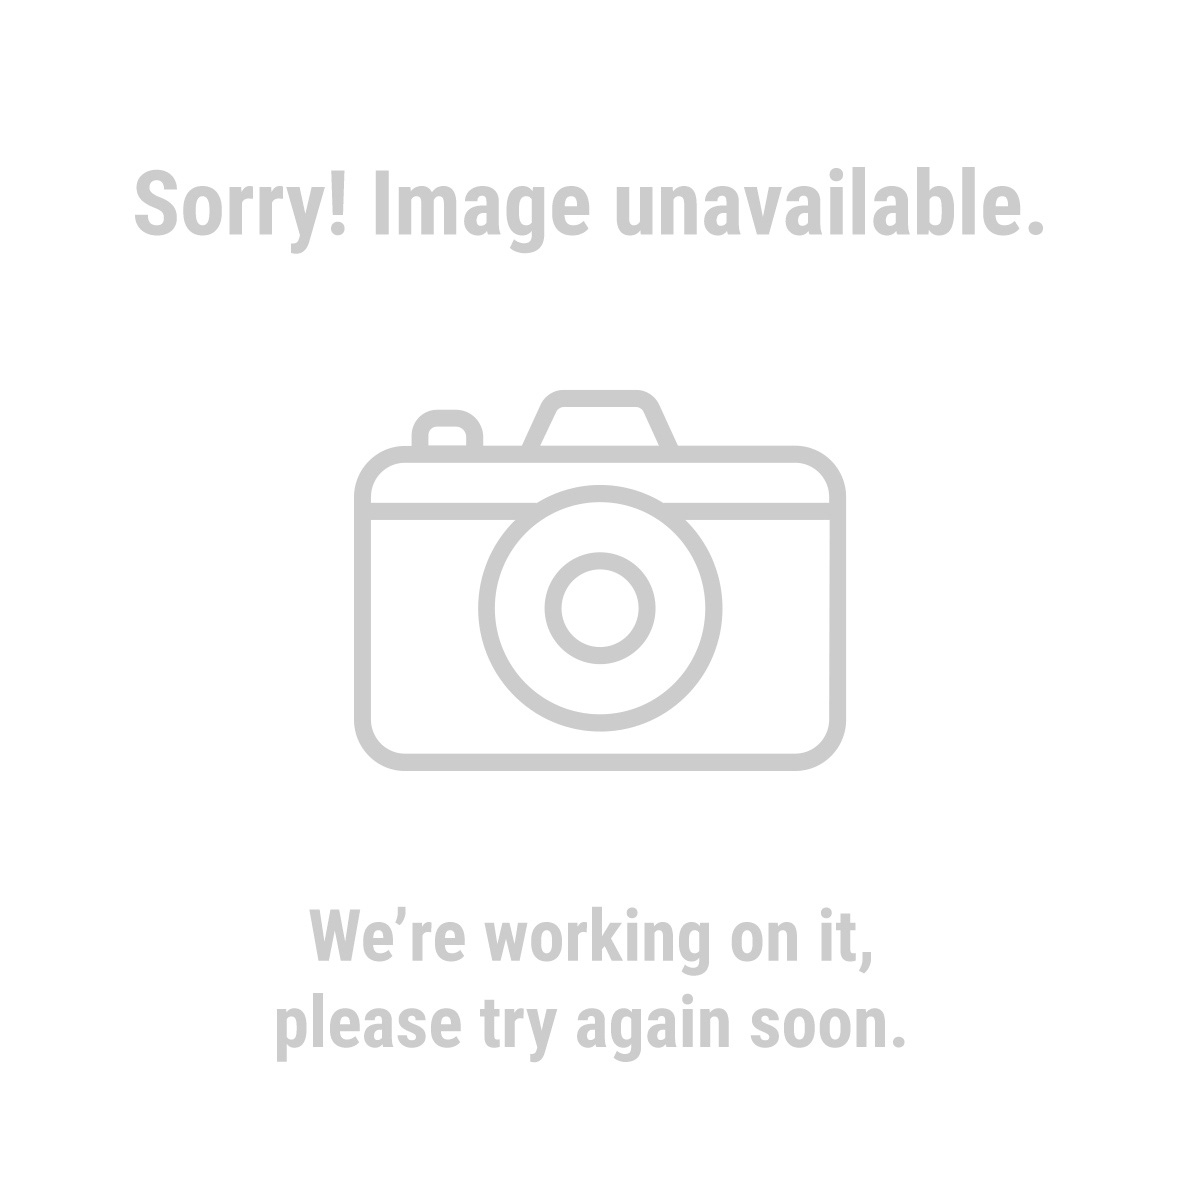 Central Pneumatic 60241 23 Gauge Pin Nailer